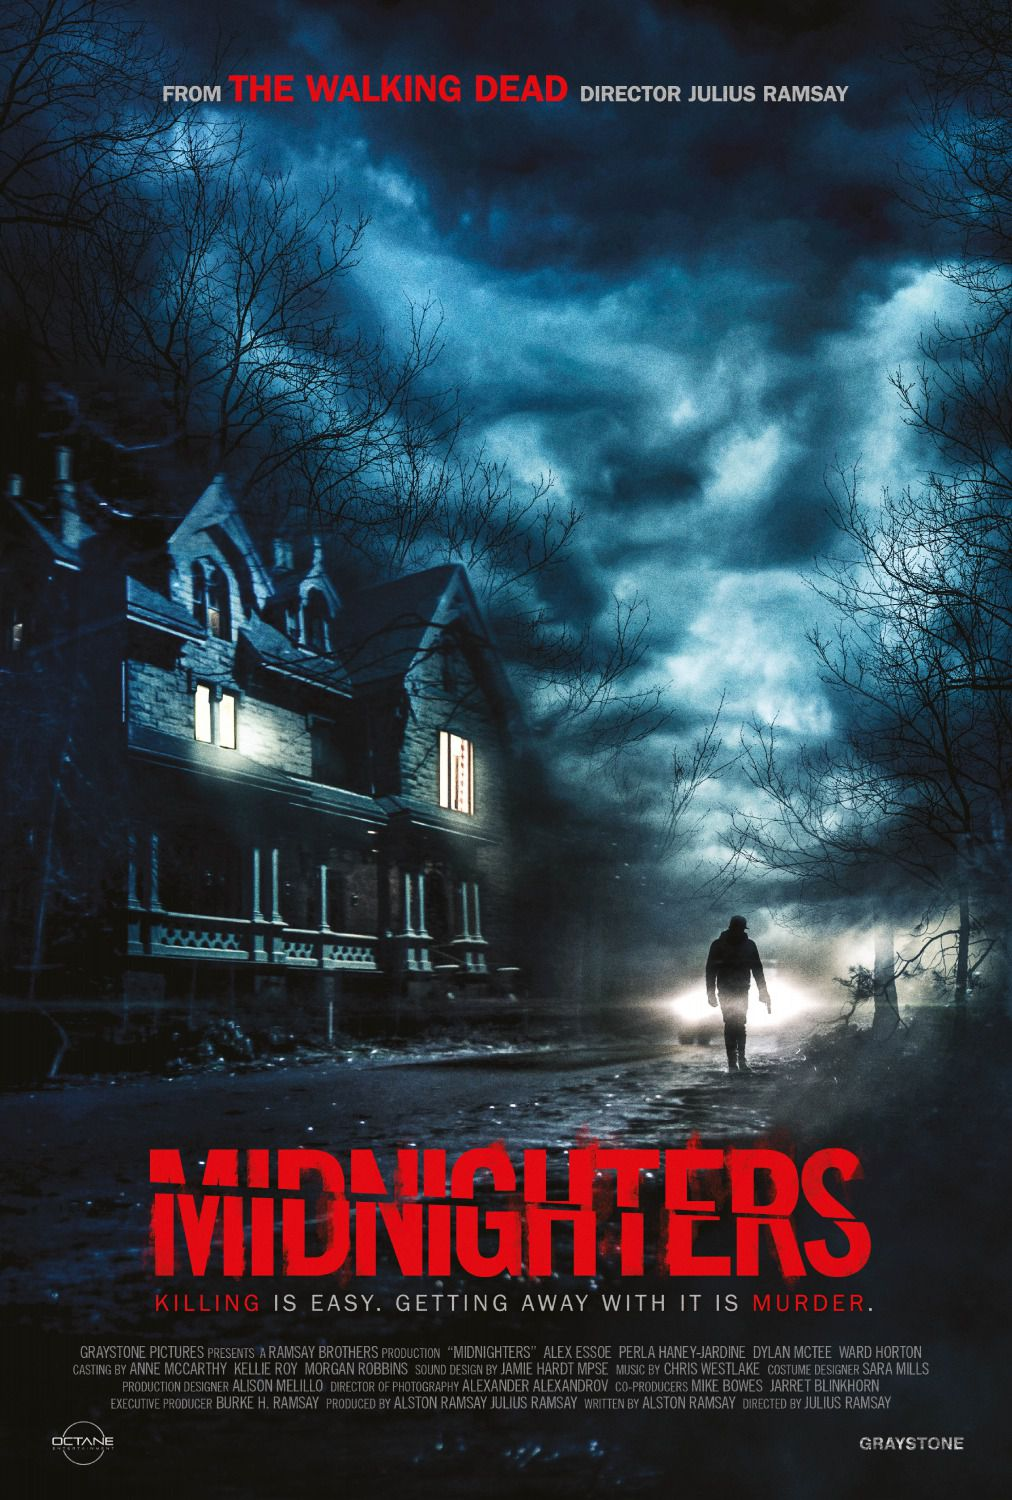 Midnighters - scary film poster 2018